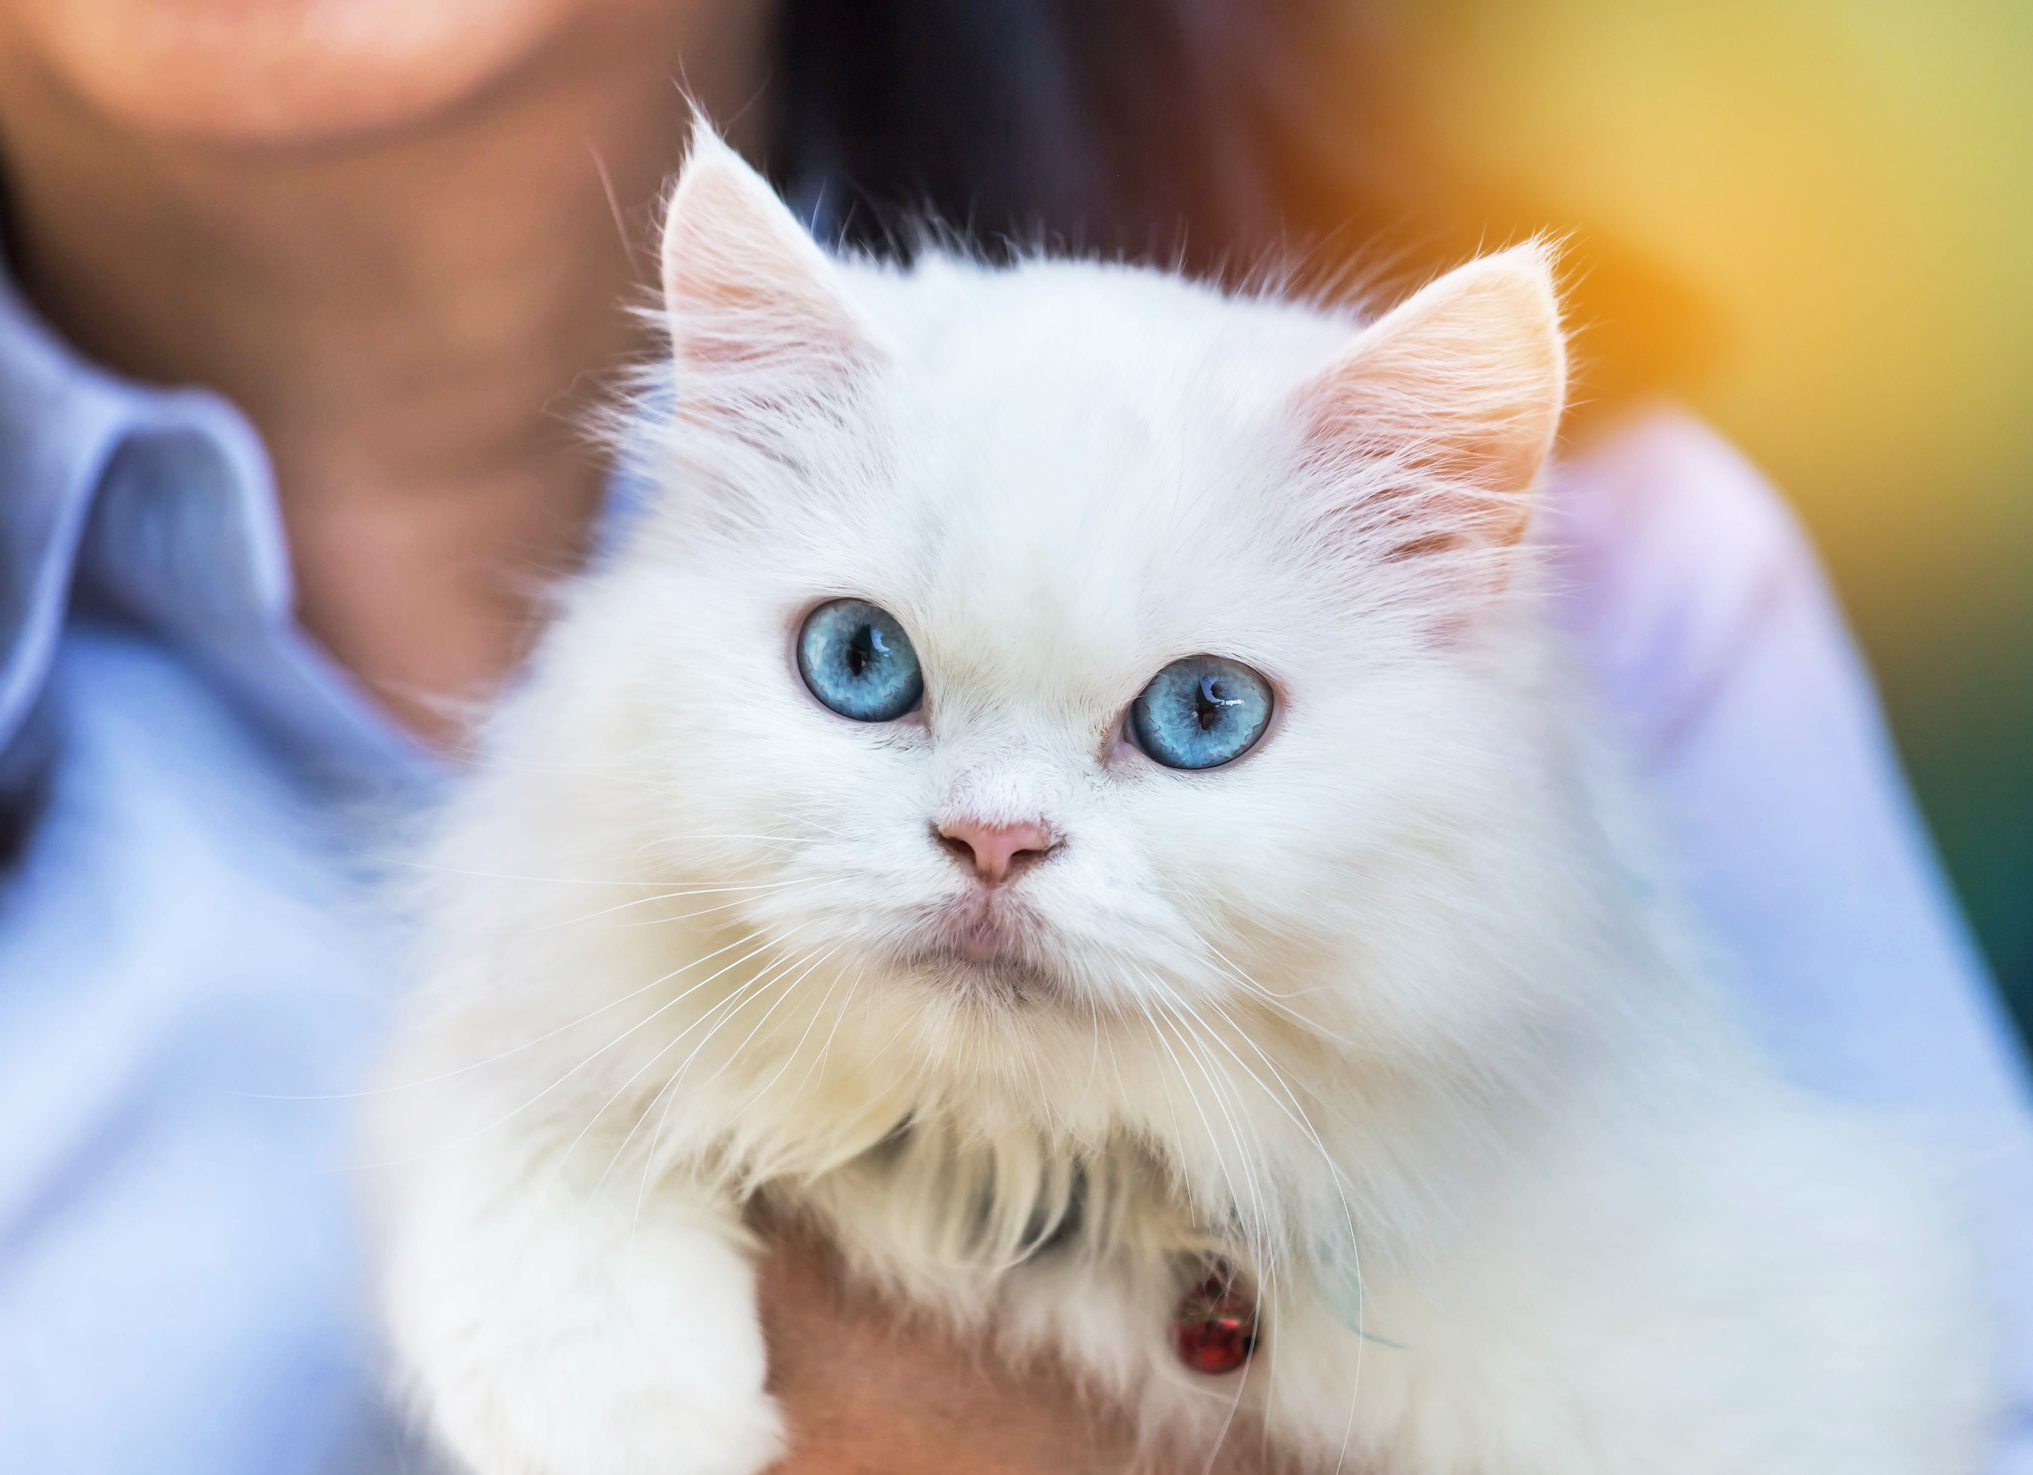 Can Cats Give Dogs Diseases Or Viruses